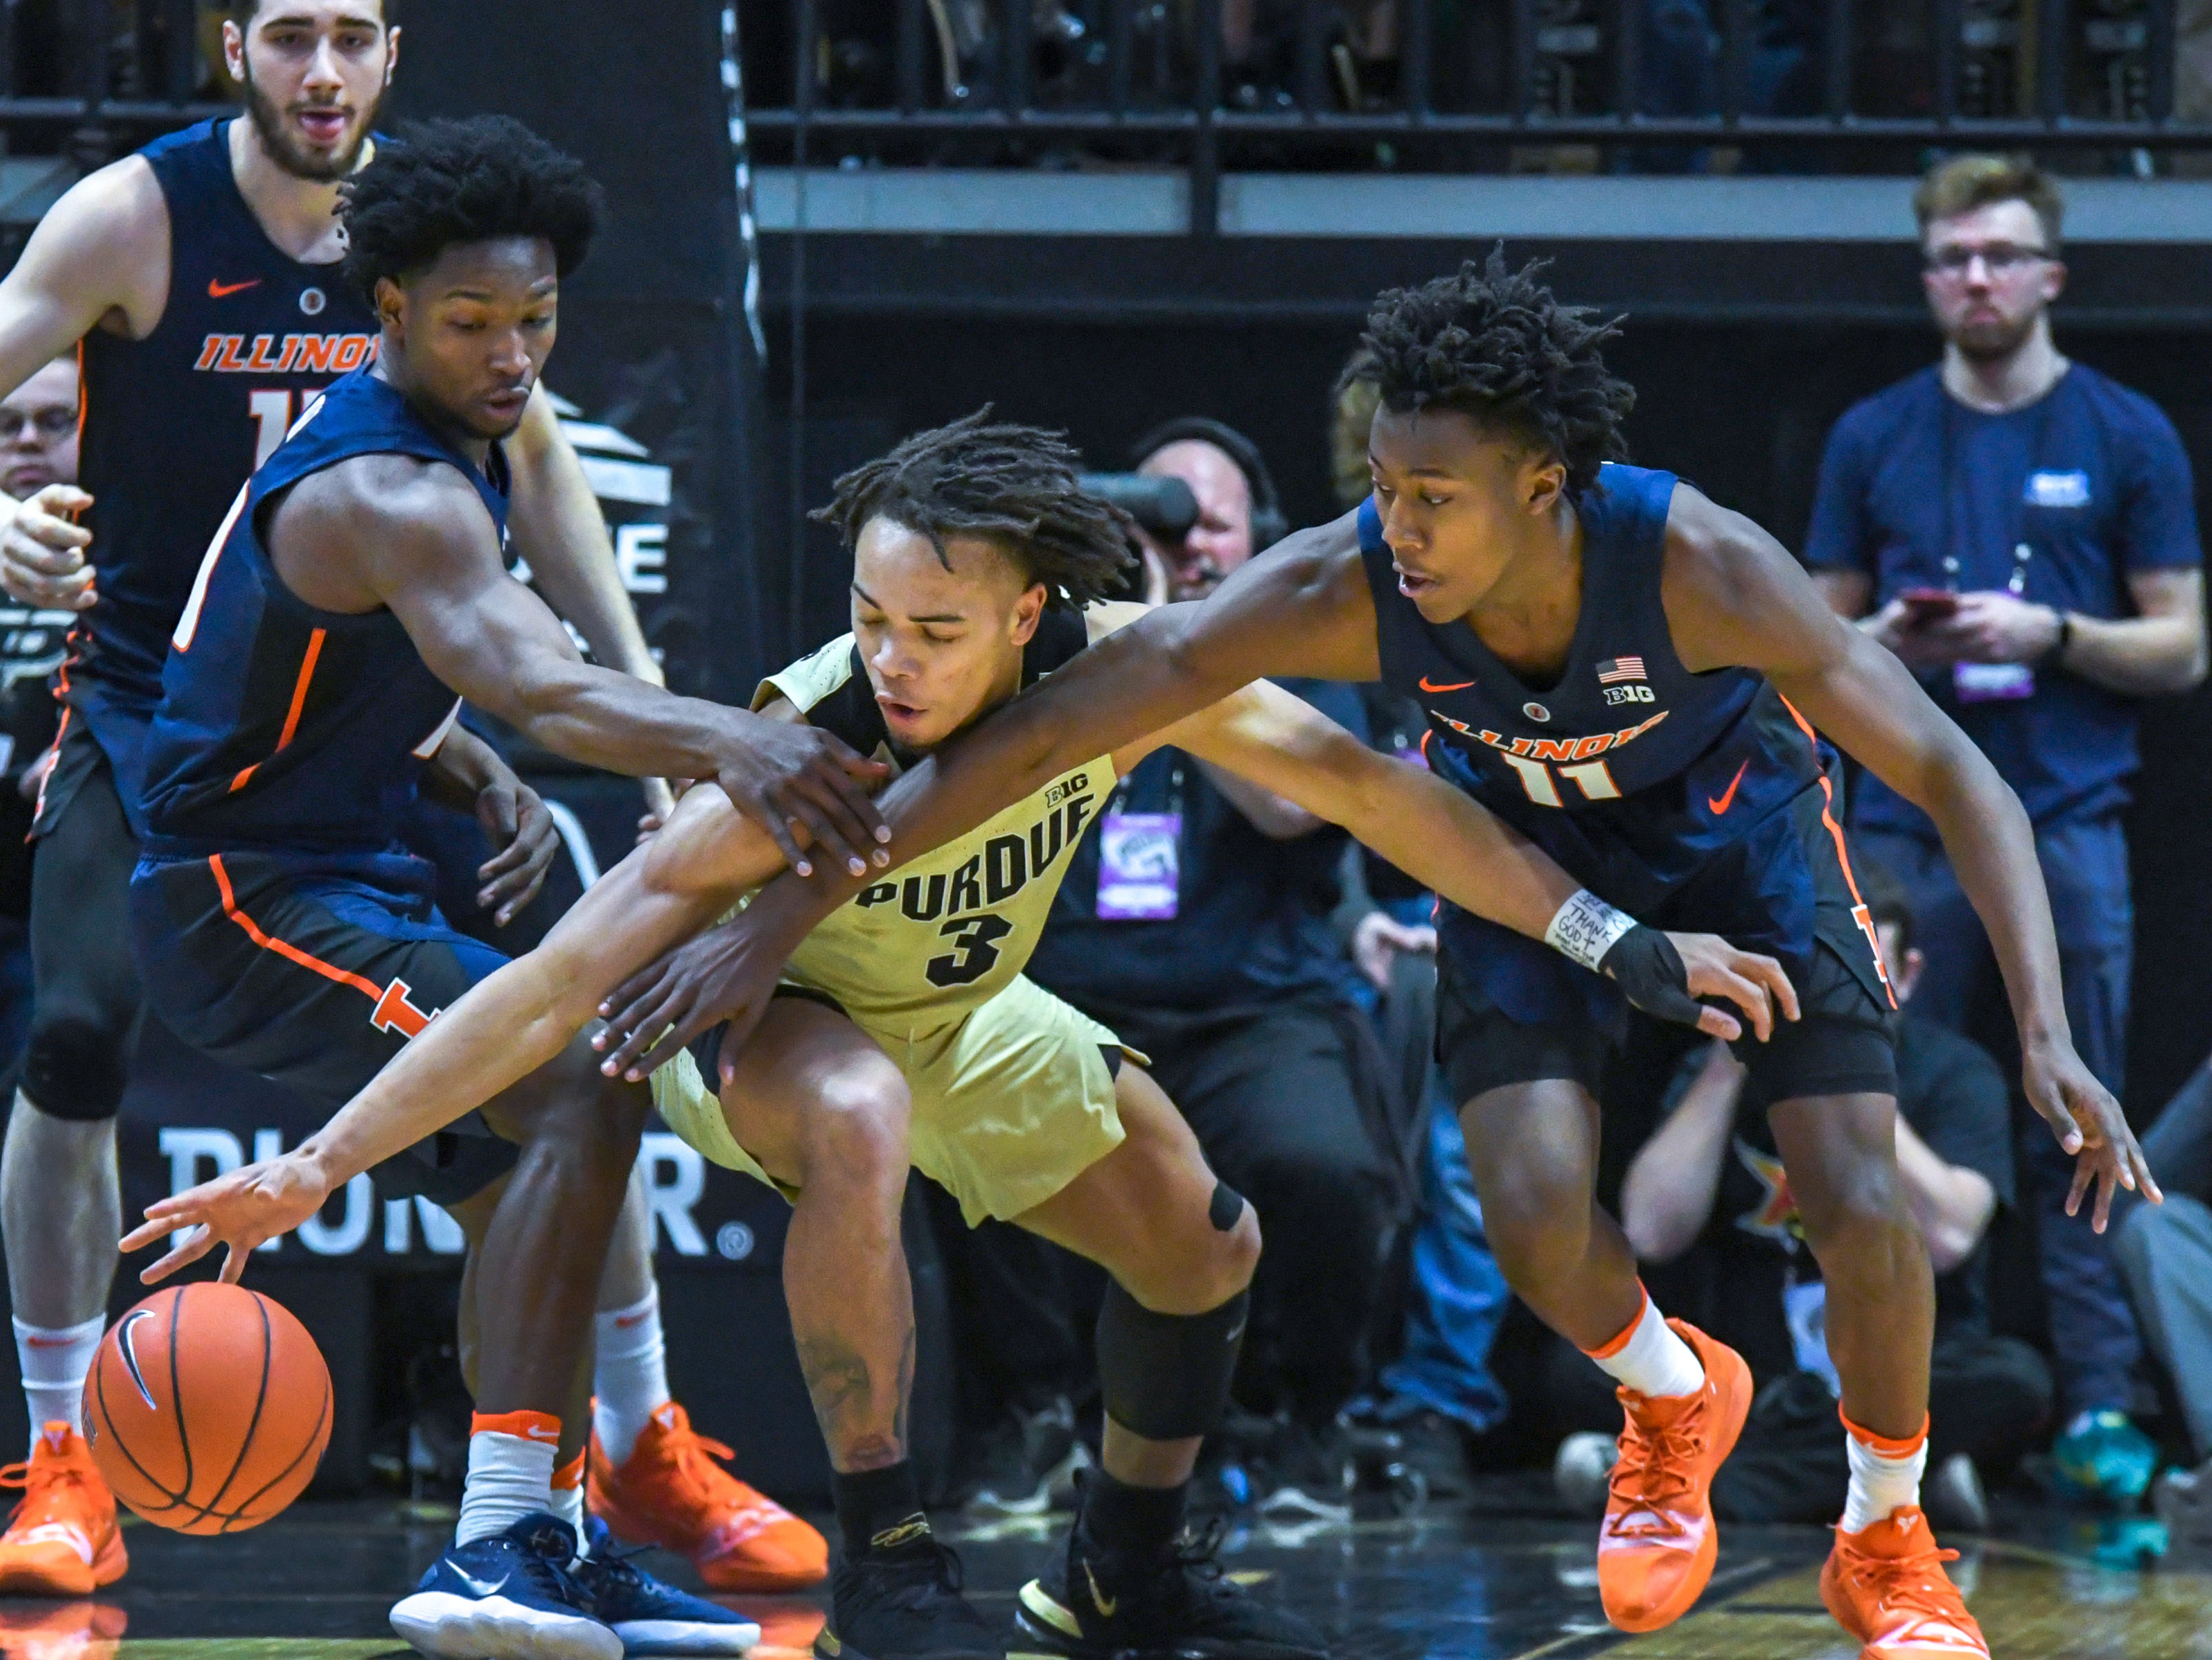 By Frank Oliver for the Journal and Courier --Purdue's Carsen Edwards, middle, battles Illinois players for control in the first half against Illinois on February 27, 2019 in West Lafayette.